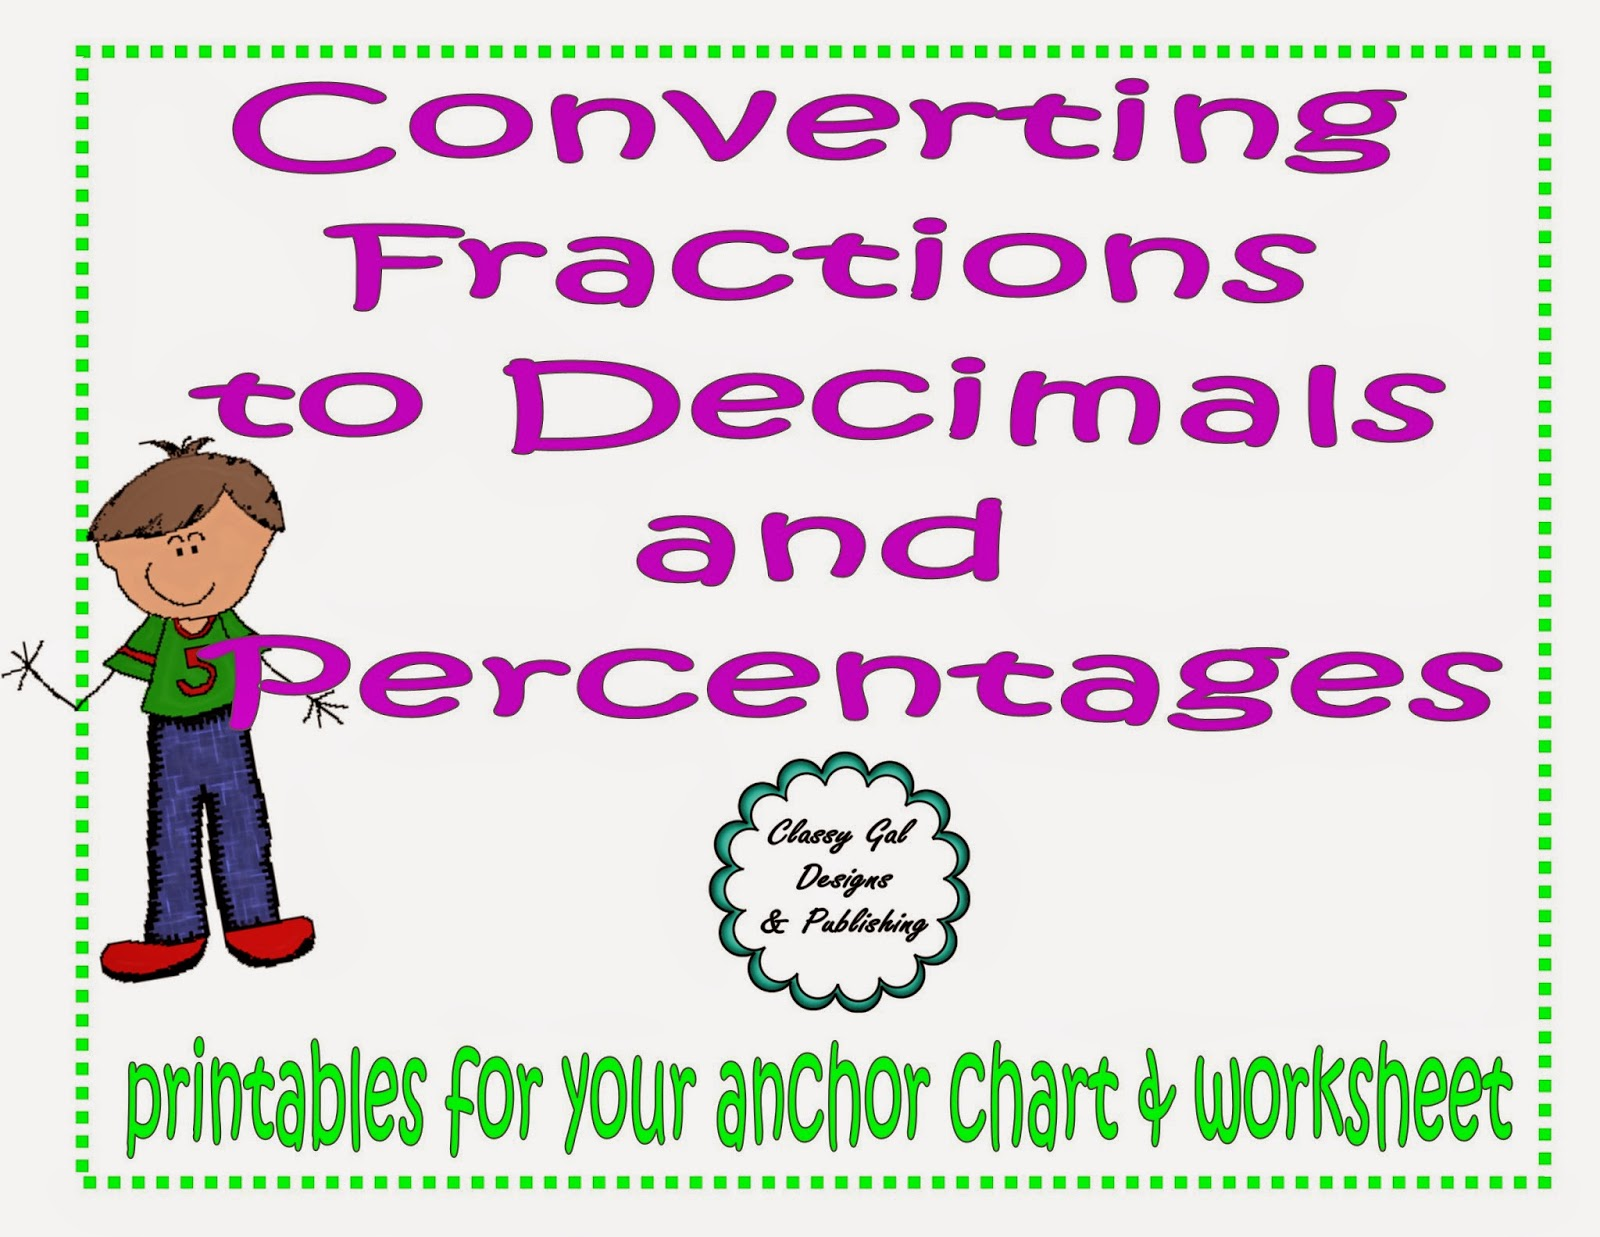 Classy Gal Designs and Publishing: Printable Anchor Chart: Converting ...